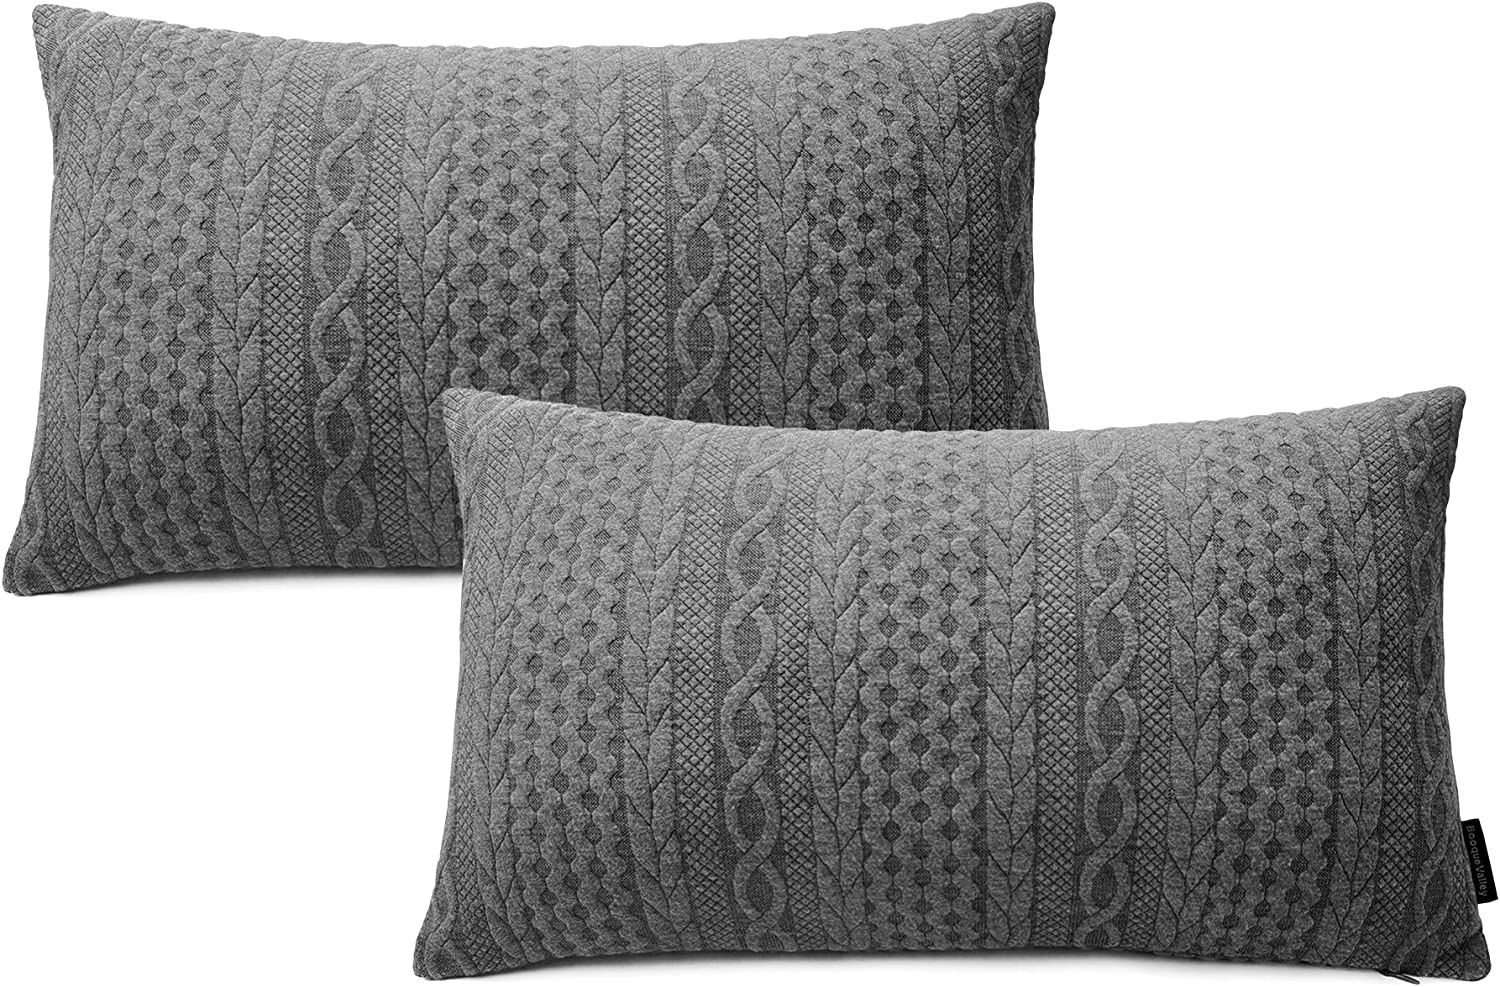 Booque Valley Lumbar Pillow Covers Pack Of 2 Super Soft Elegant 12 X 20 Inch Oblong Rectangular Throw Pillow Covers Modern Embossed Patterned Knit Gray Cushions For Sofa Bed Car Chair Grey Home Kitchen